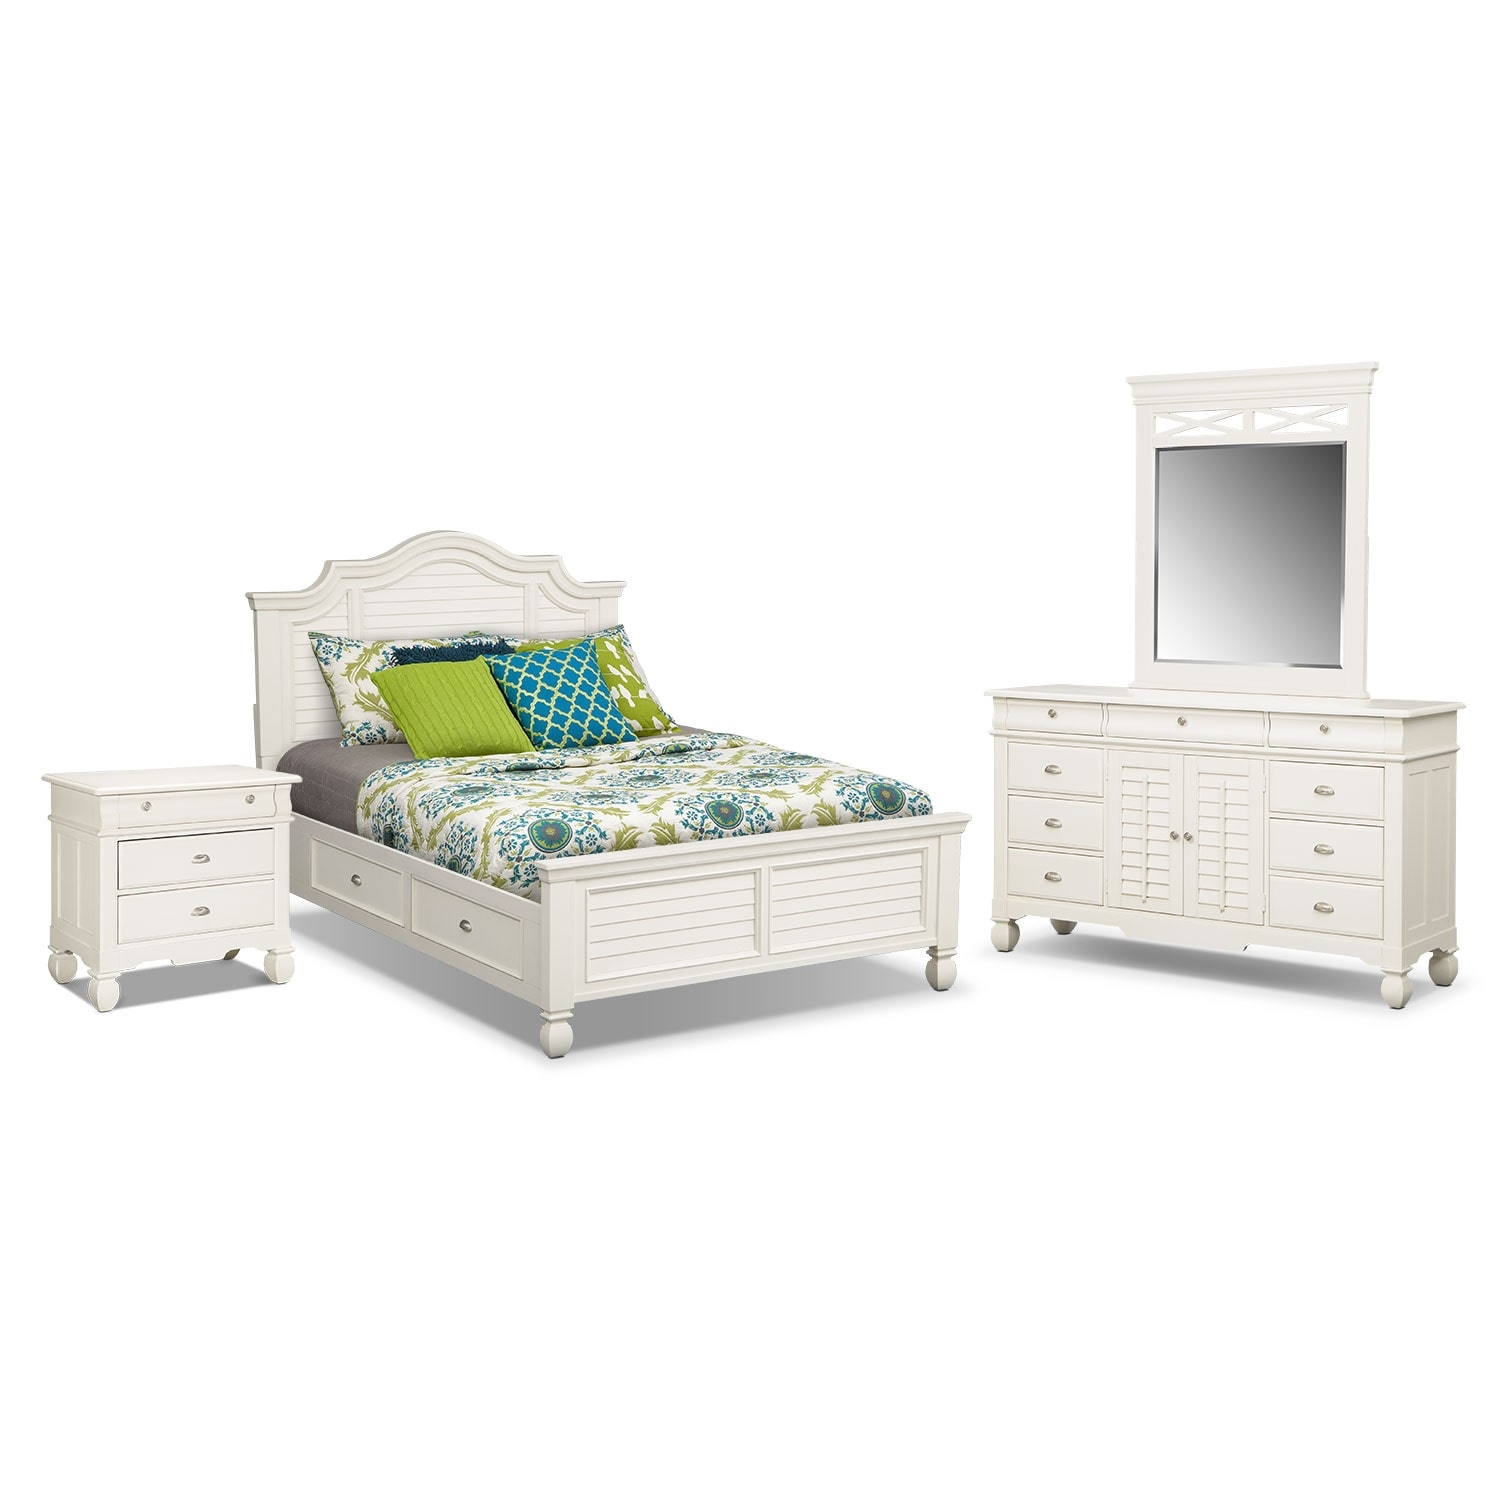 Plantation cove 6 piece king storage bedroom set white for White bedroom set with storage